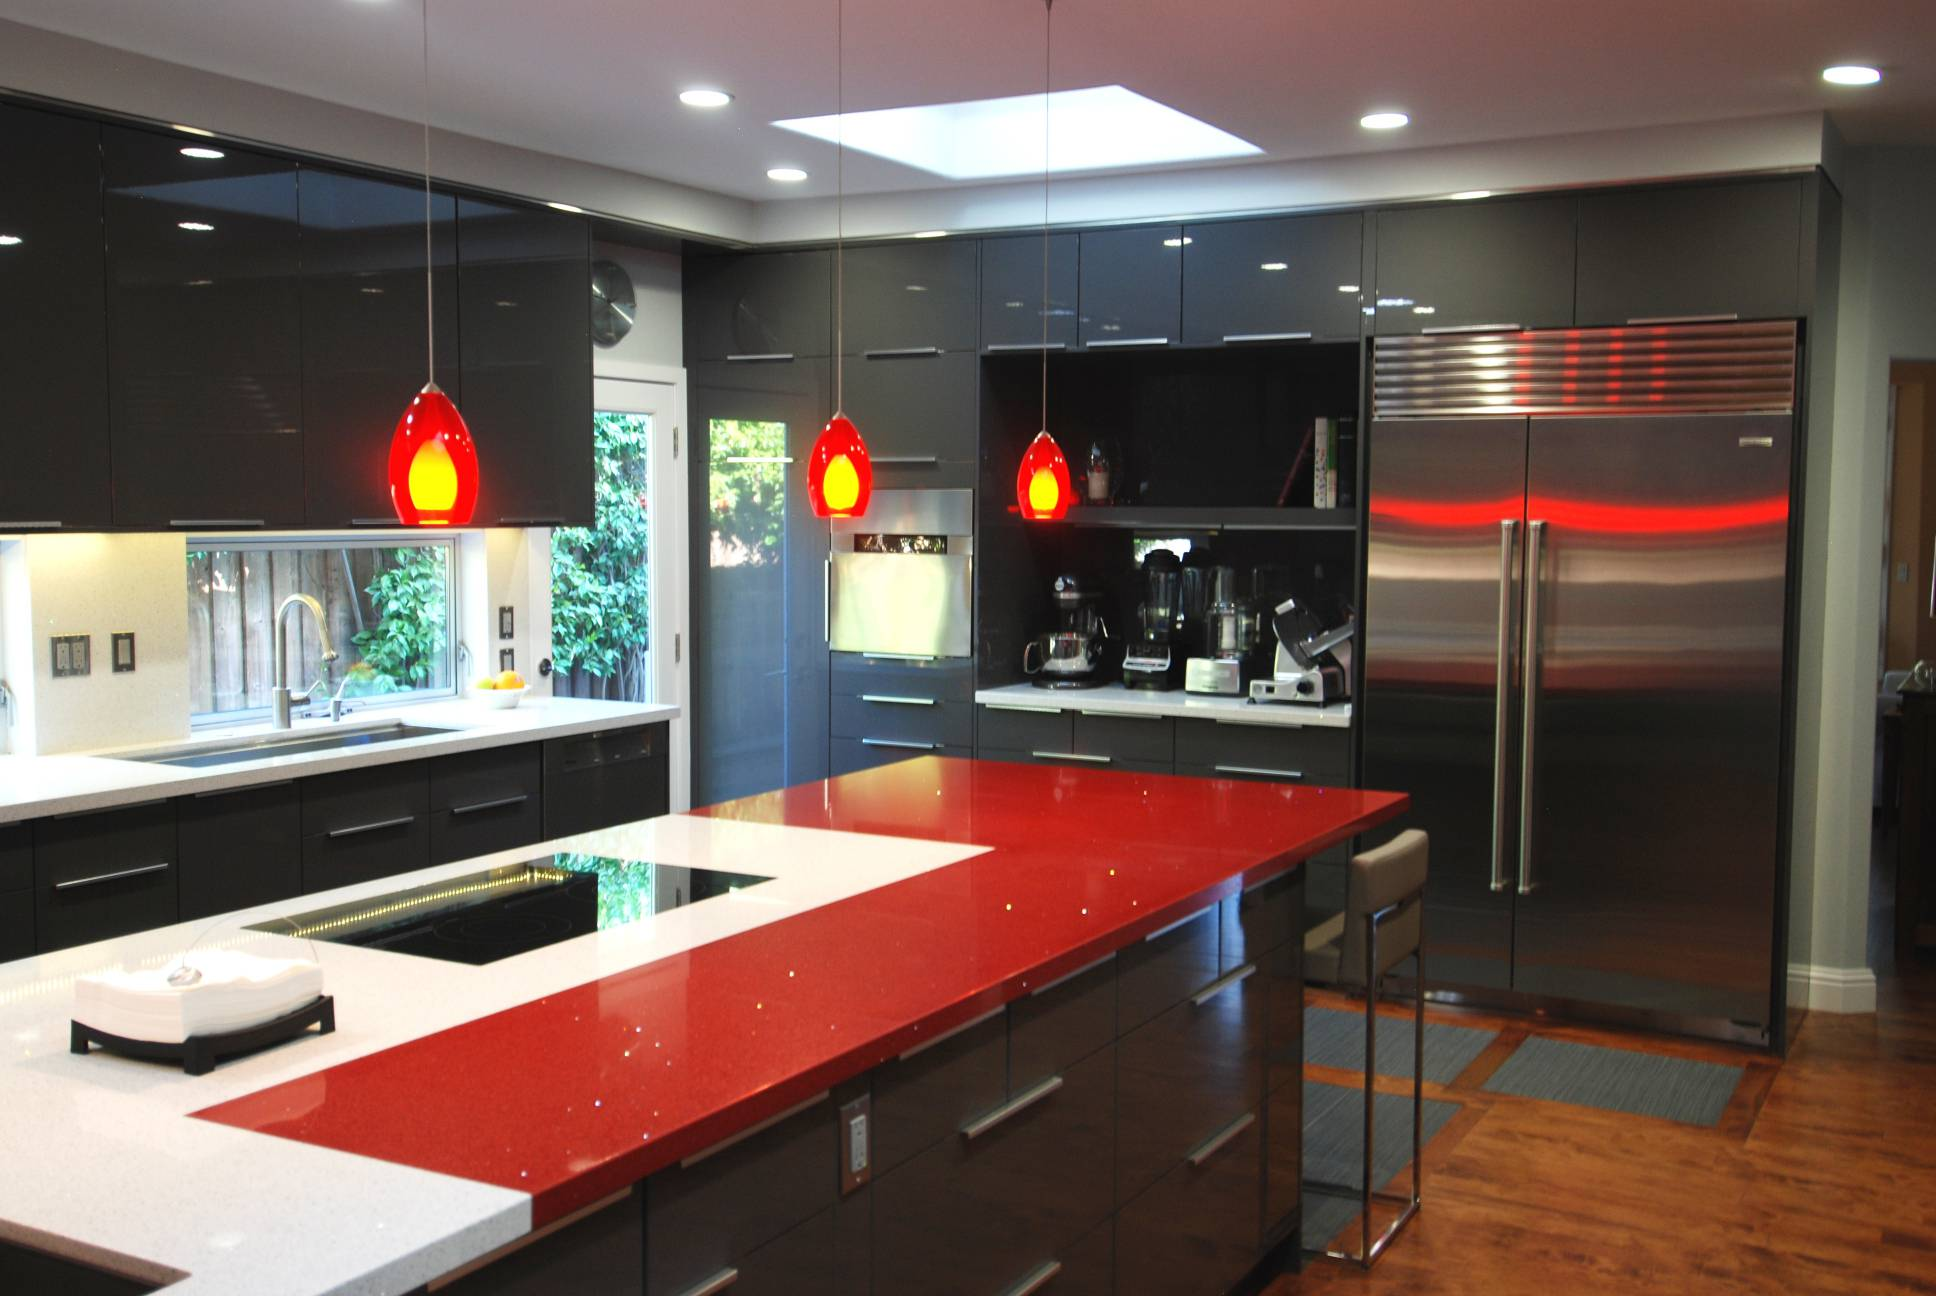 Modern kitchen red grey countertops cabinetry hanging lamps, best interior design, Los Altos